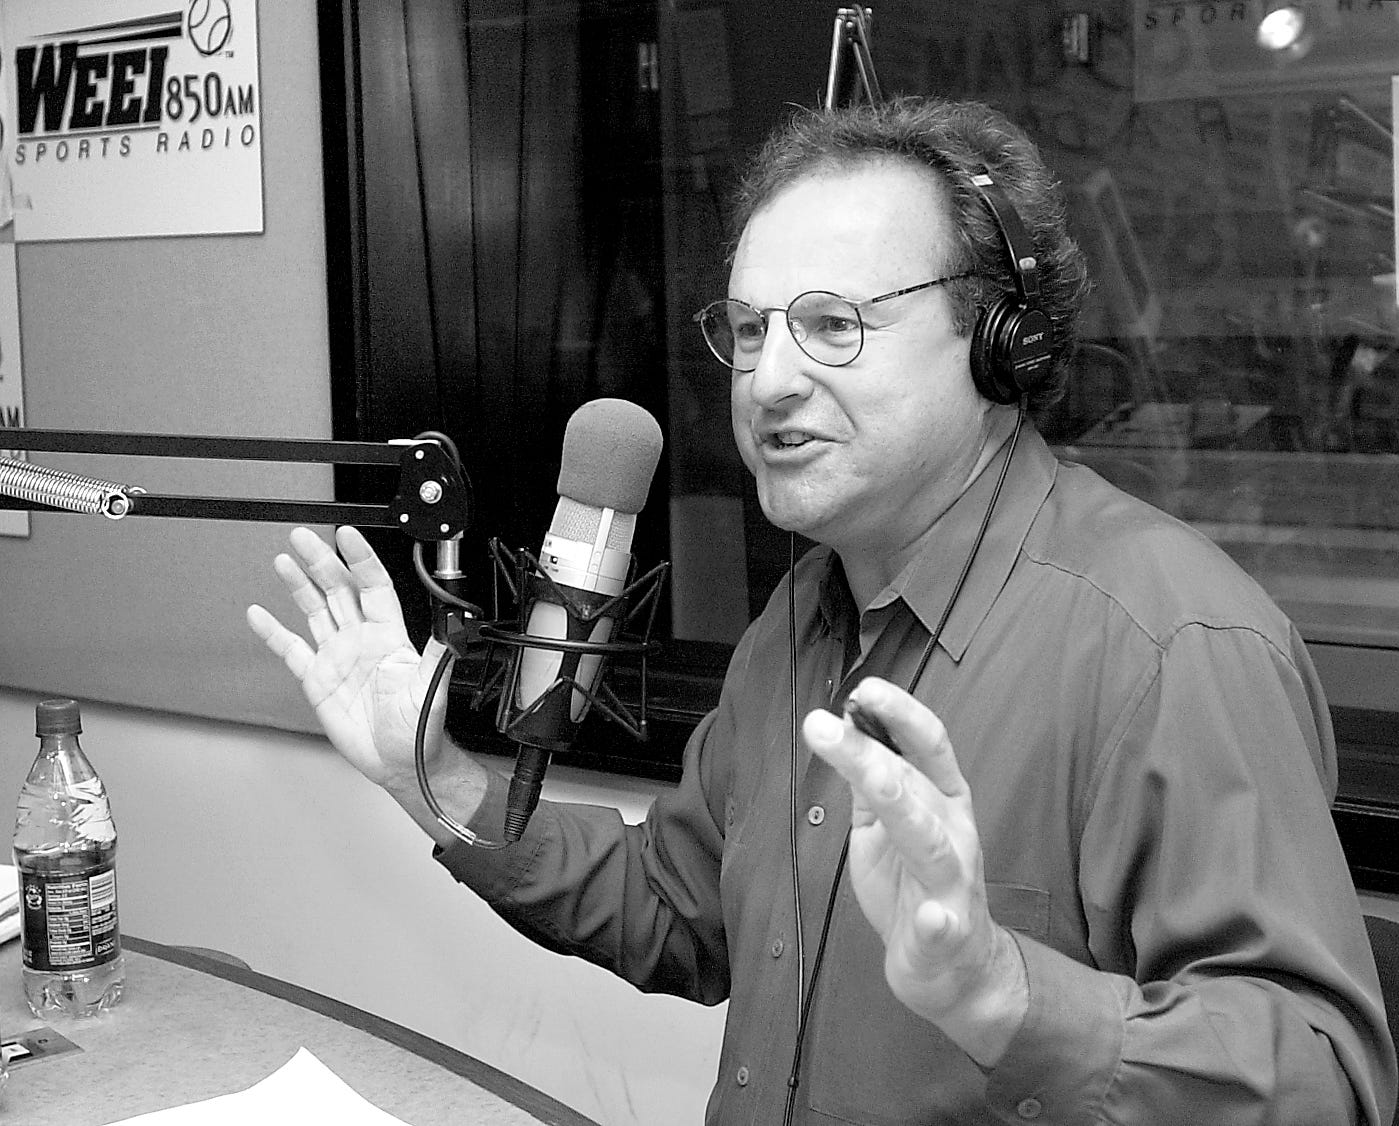 patriotledger.com - Mary Whitfill, The Patriot Ledger - Weymouth native, Boston sports broadcaster Bob Neumeier dies at age 70